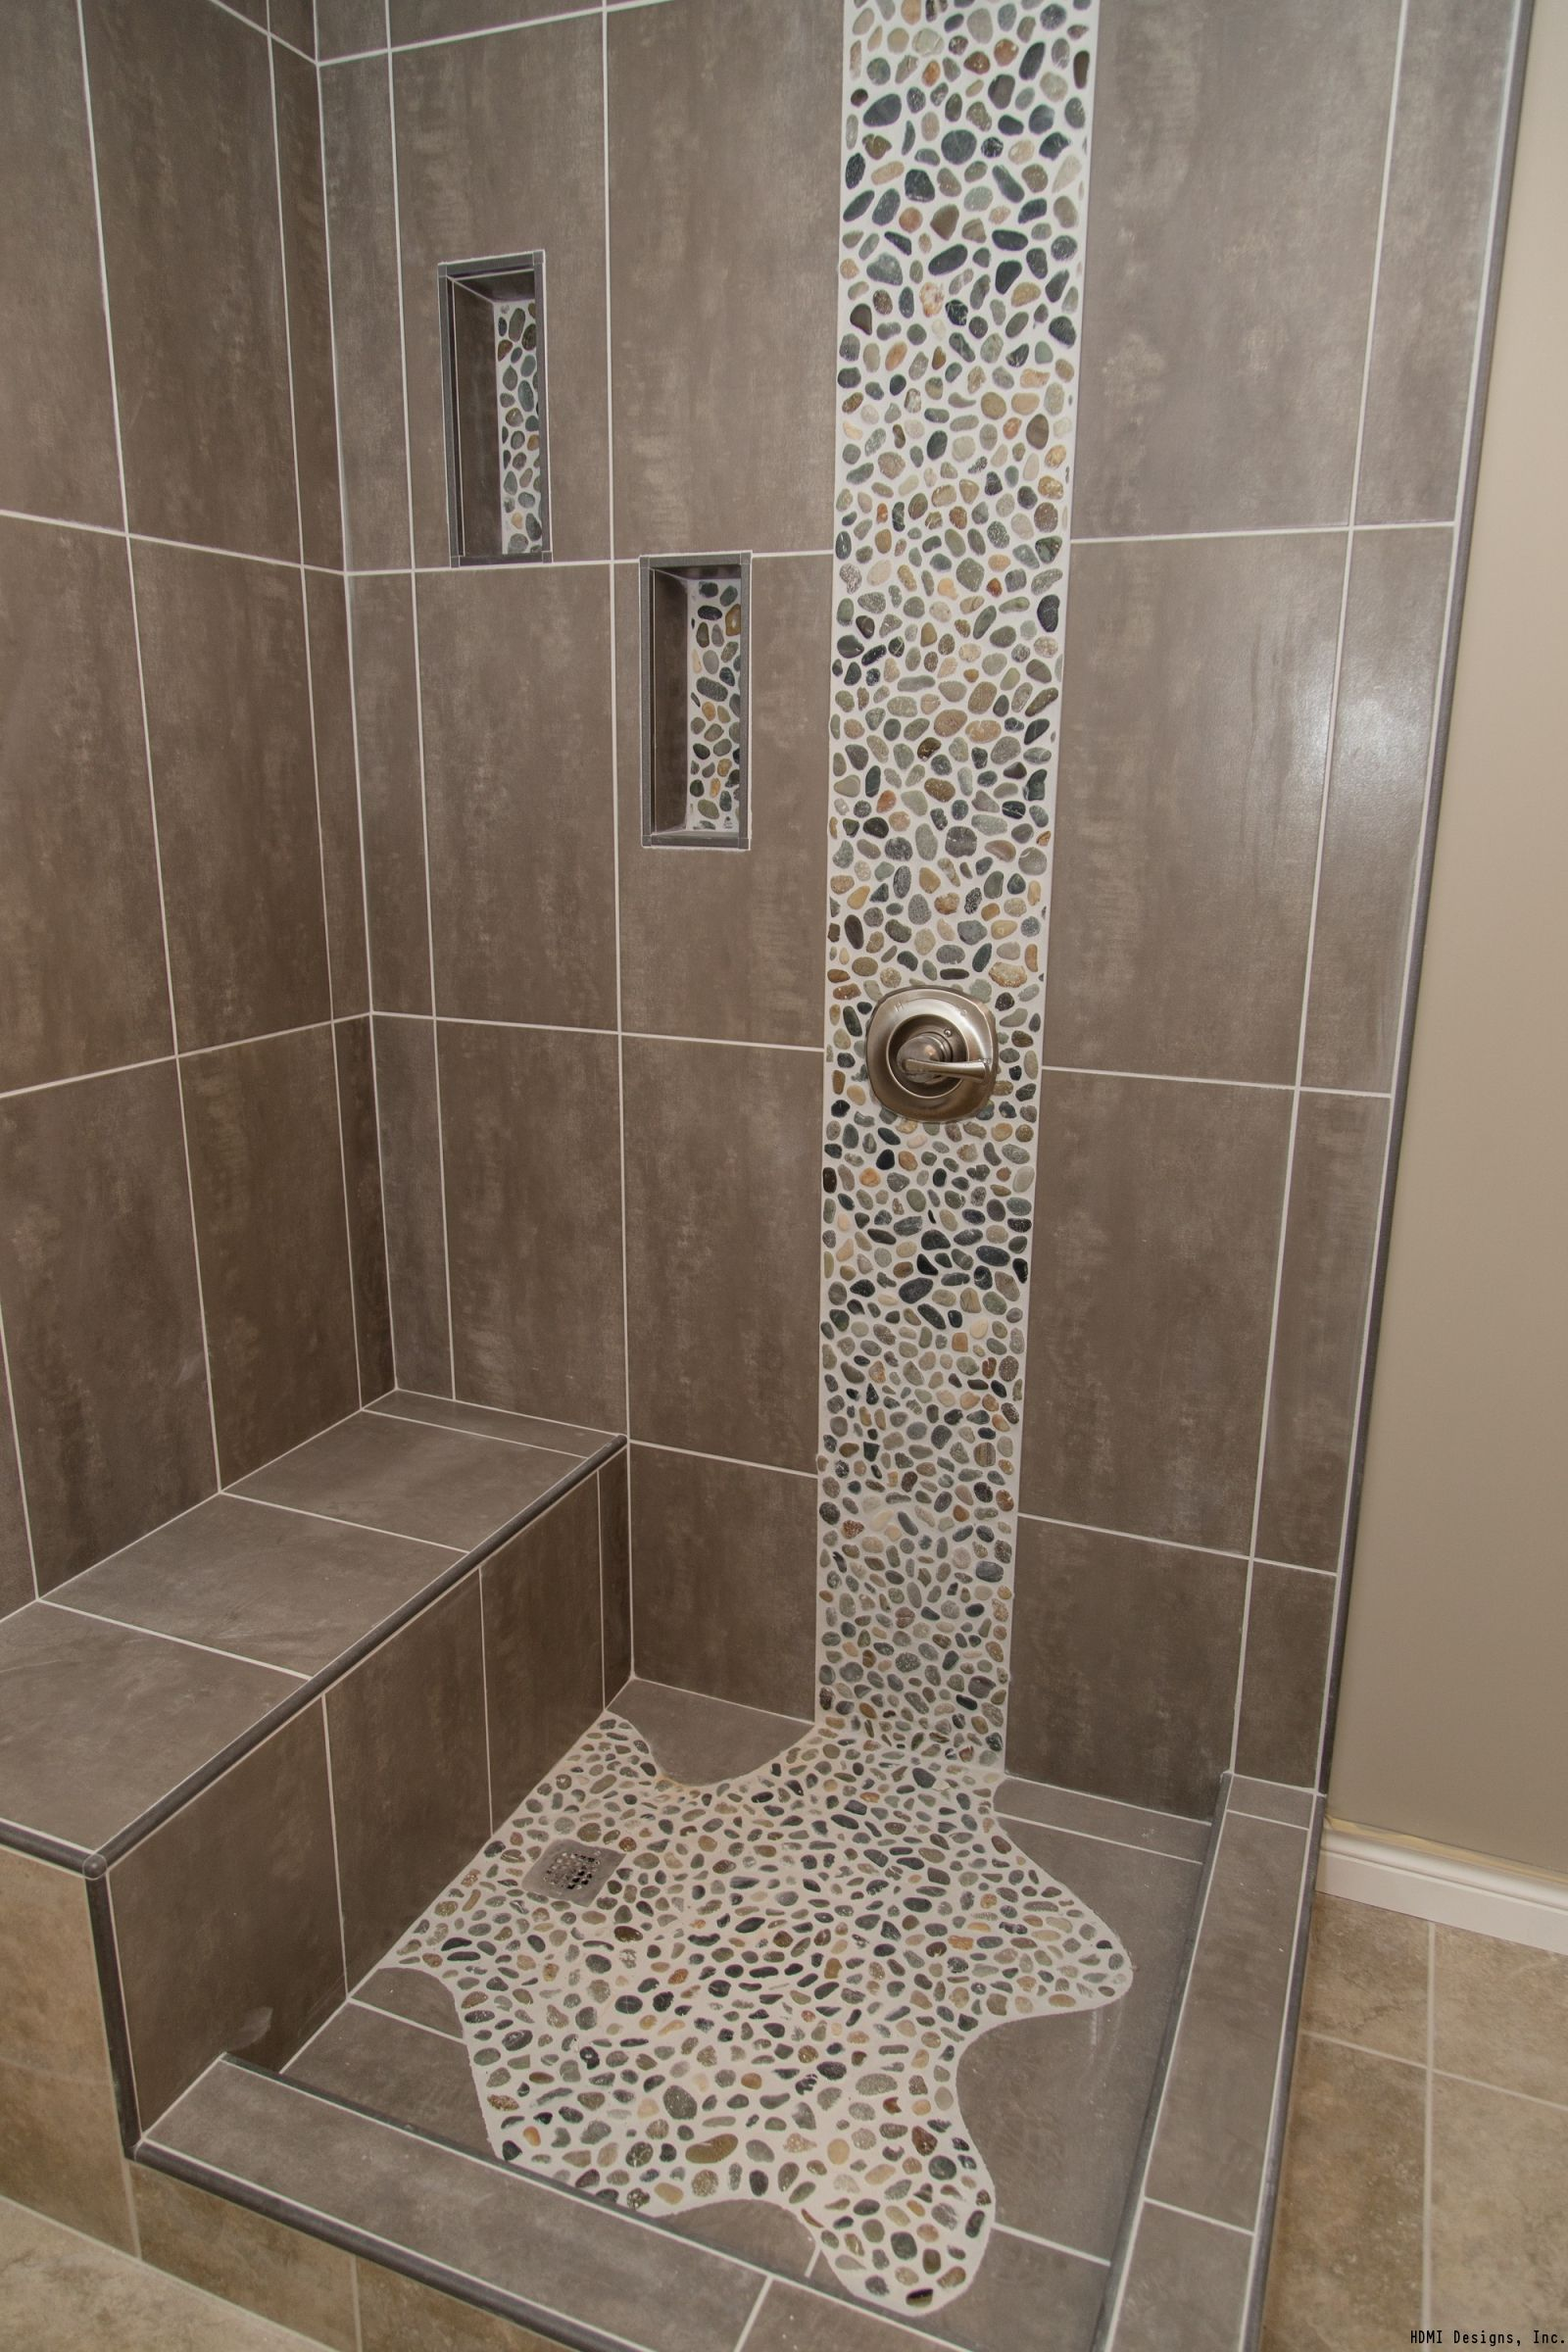 spruce up your showeradding pebble tile accents! click the pin